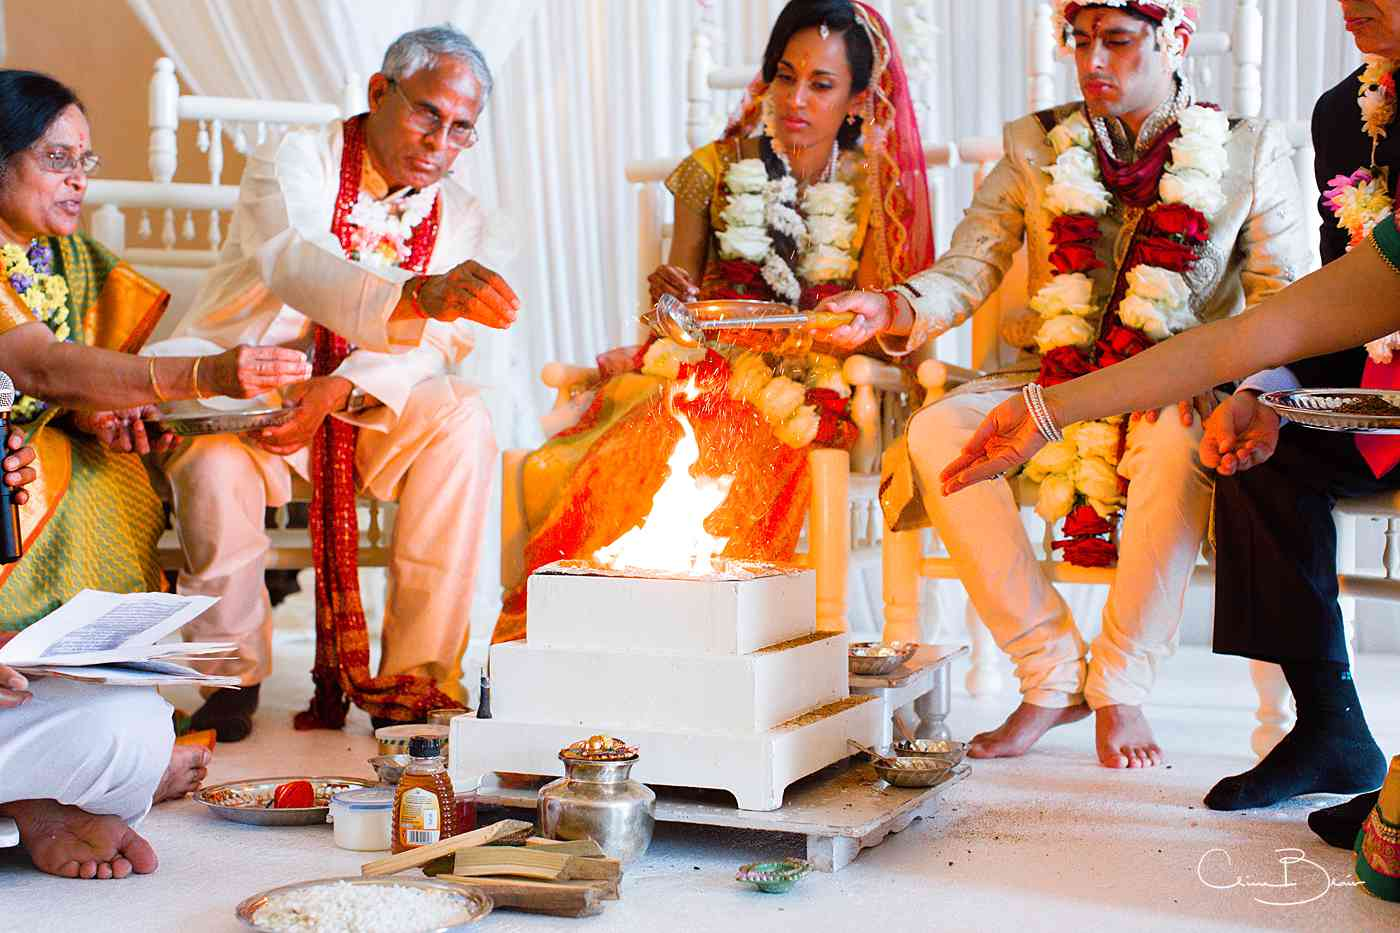 Fire being stoked during Indian wedding ceremony